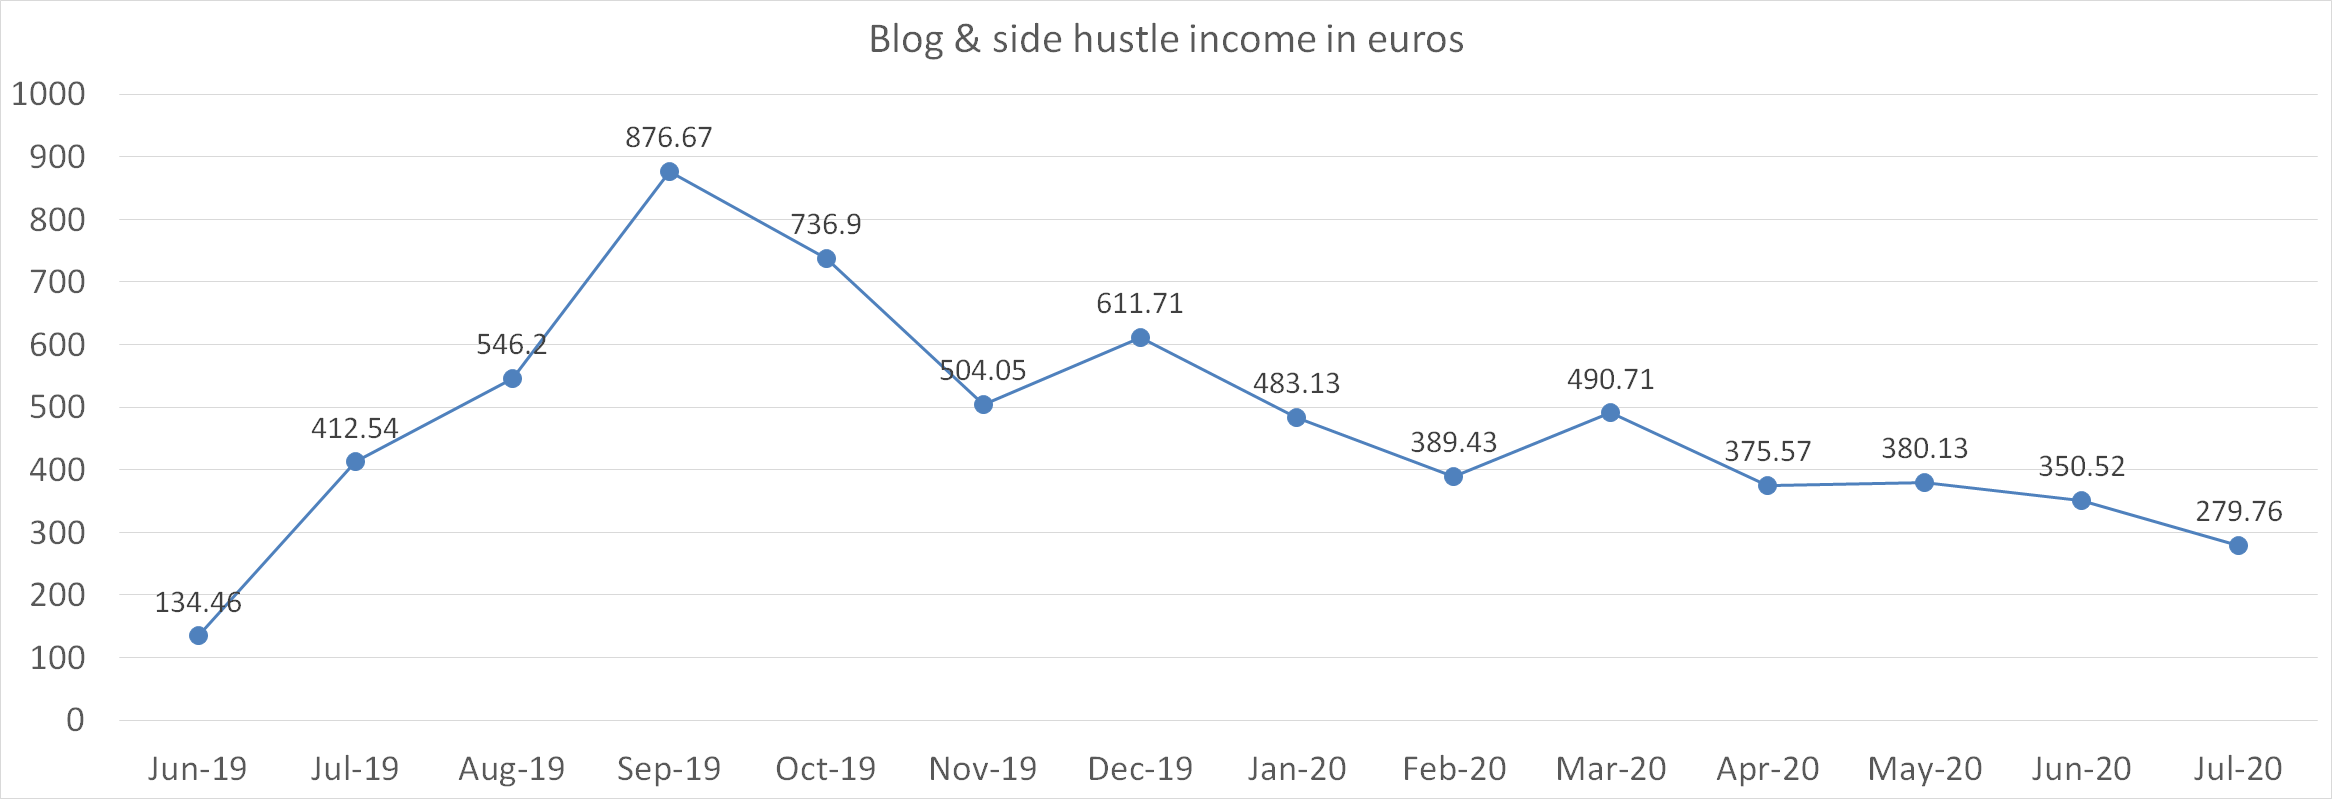 Blog and side hustle income in euros july 2020